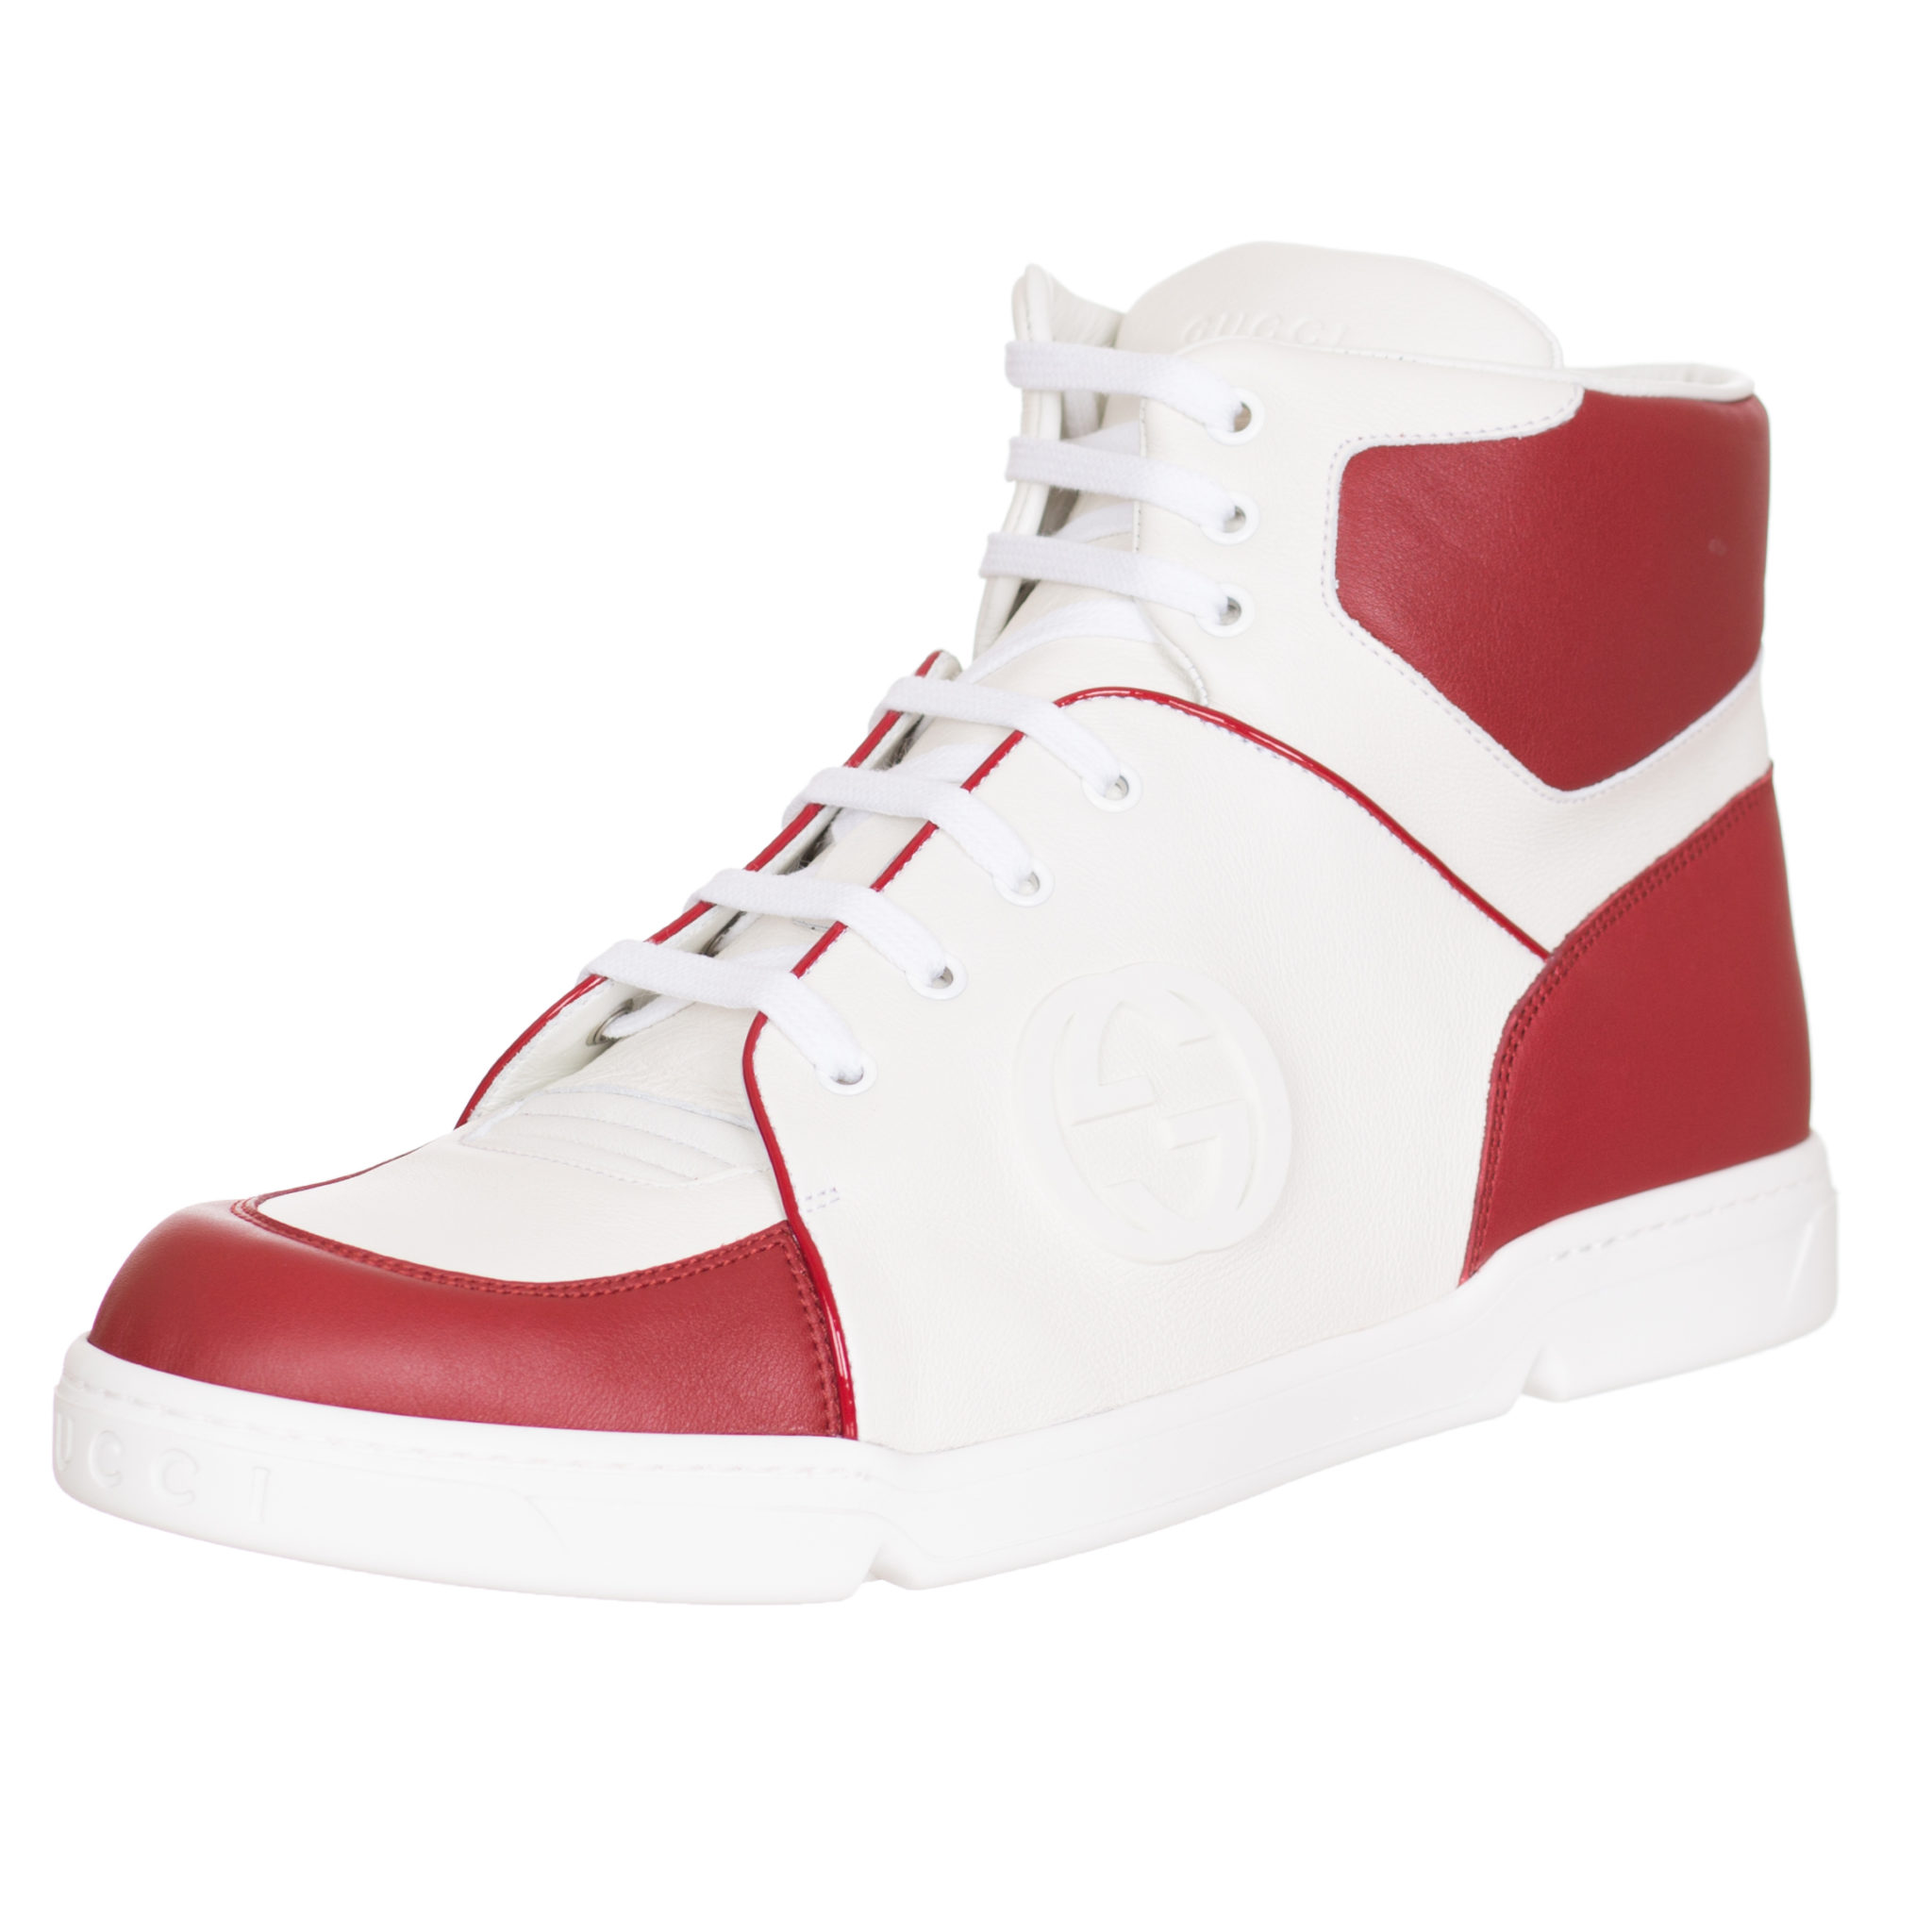 Gucci Men\u0027s Red White Leather High Top GG Sneakers Shoes